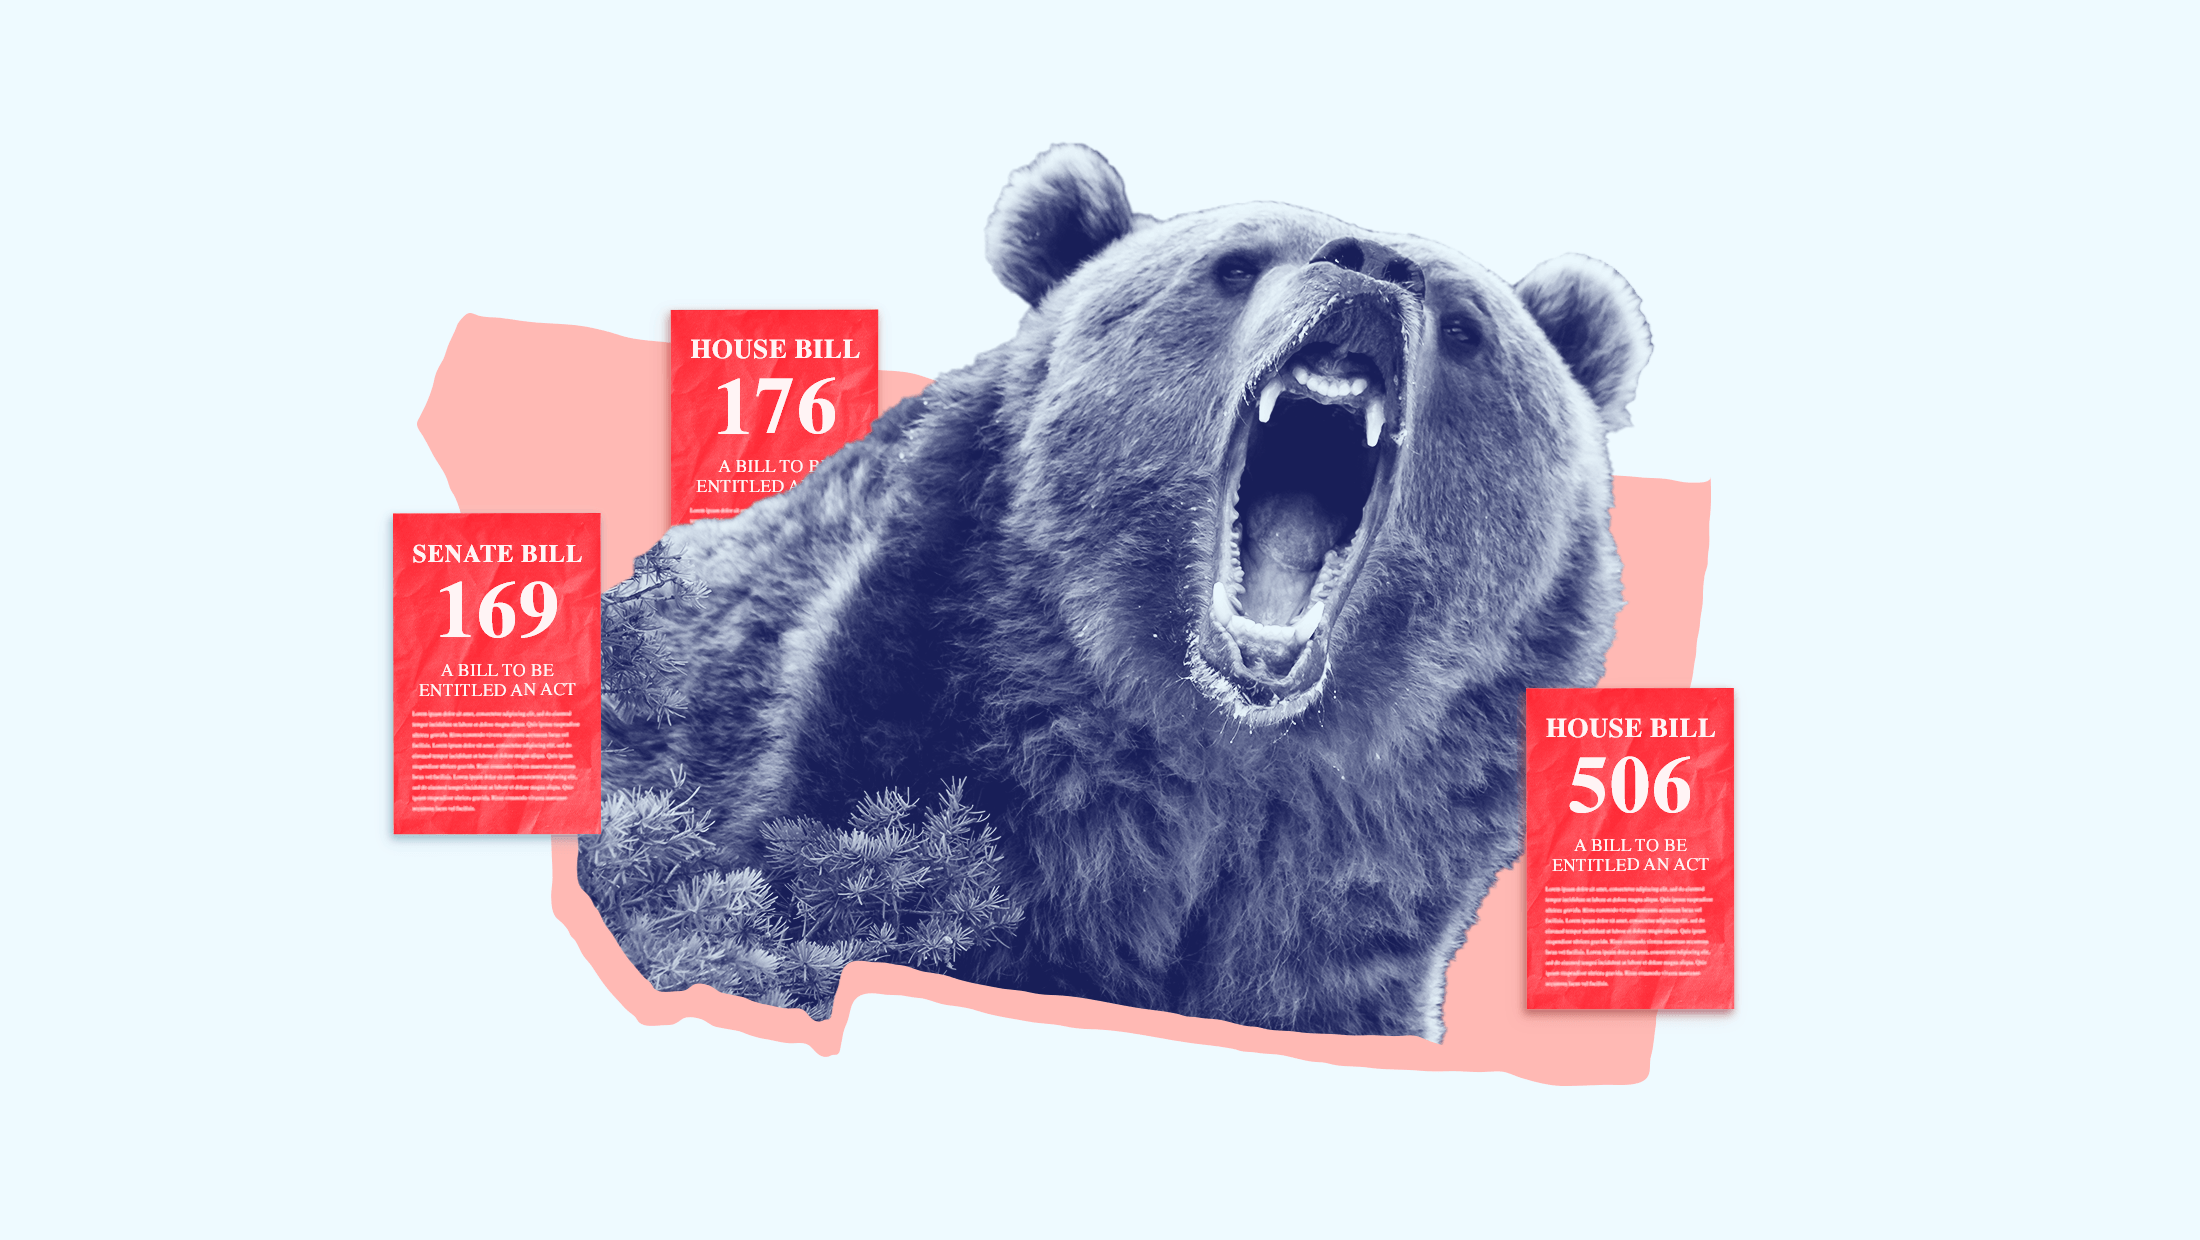 """A Montana grizzly bear surrounded by voter suppressions bills with text that say, """"HOUSE BILL 176, SENATE BILL 169, HOUSE BILL 506."""""""